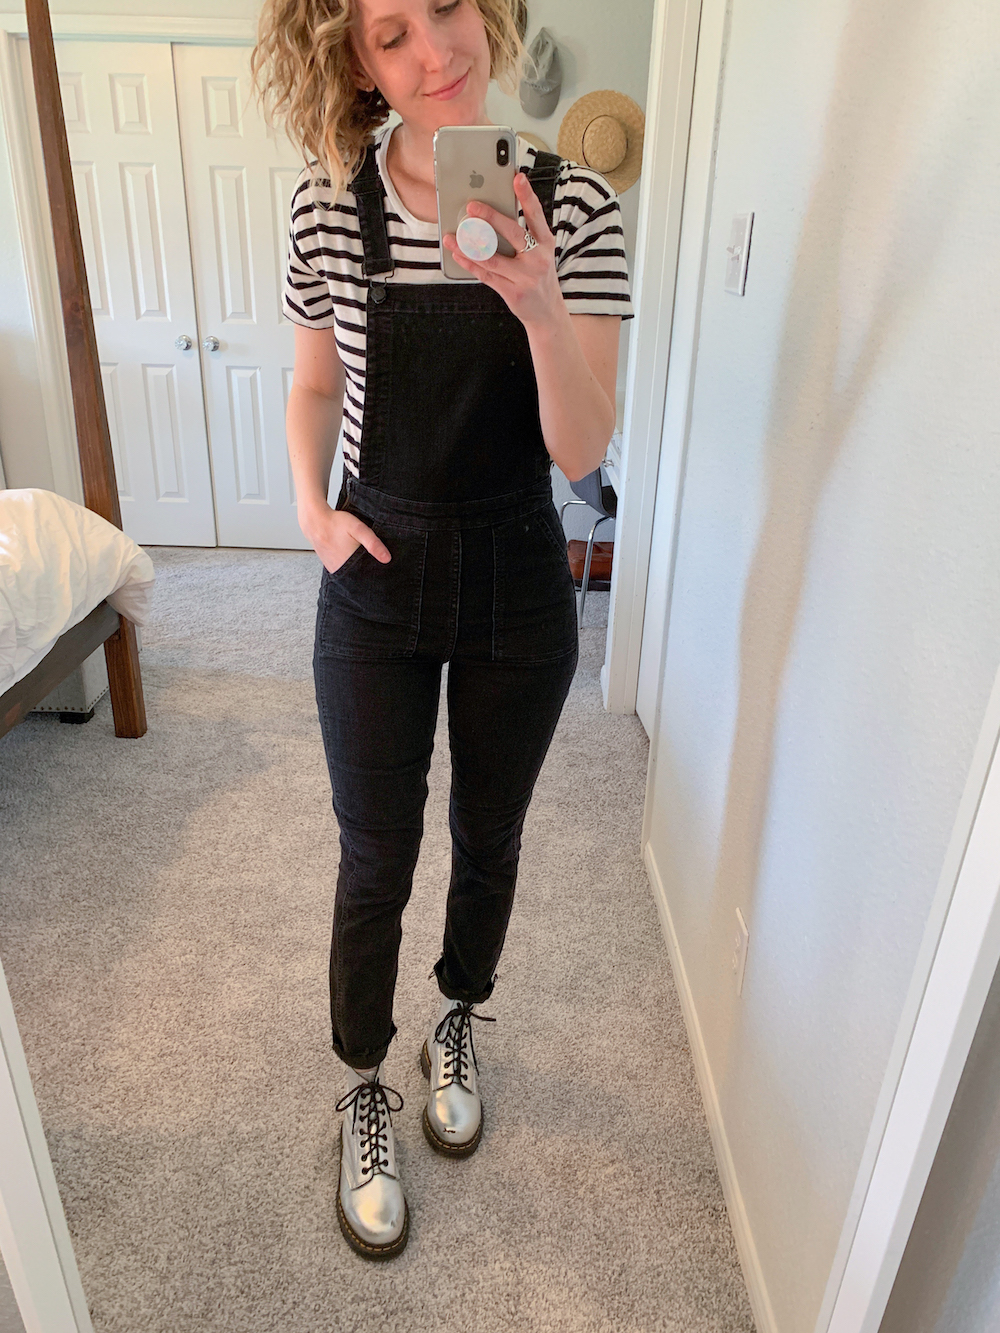 how to style denim overalls, overalls, styling overalls, casual overalls, six ways to style overalls, Jesse Coulter blog, Austin blogger, Austin fashion blogger, mom overalls, madewell overalls, mom style blogger, mom fashion blogger, Austin Texas, Austin blogger, black overalls